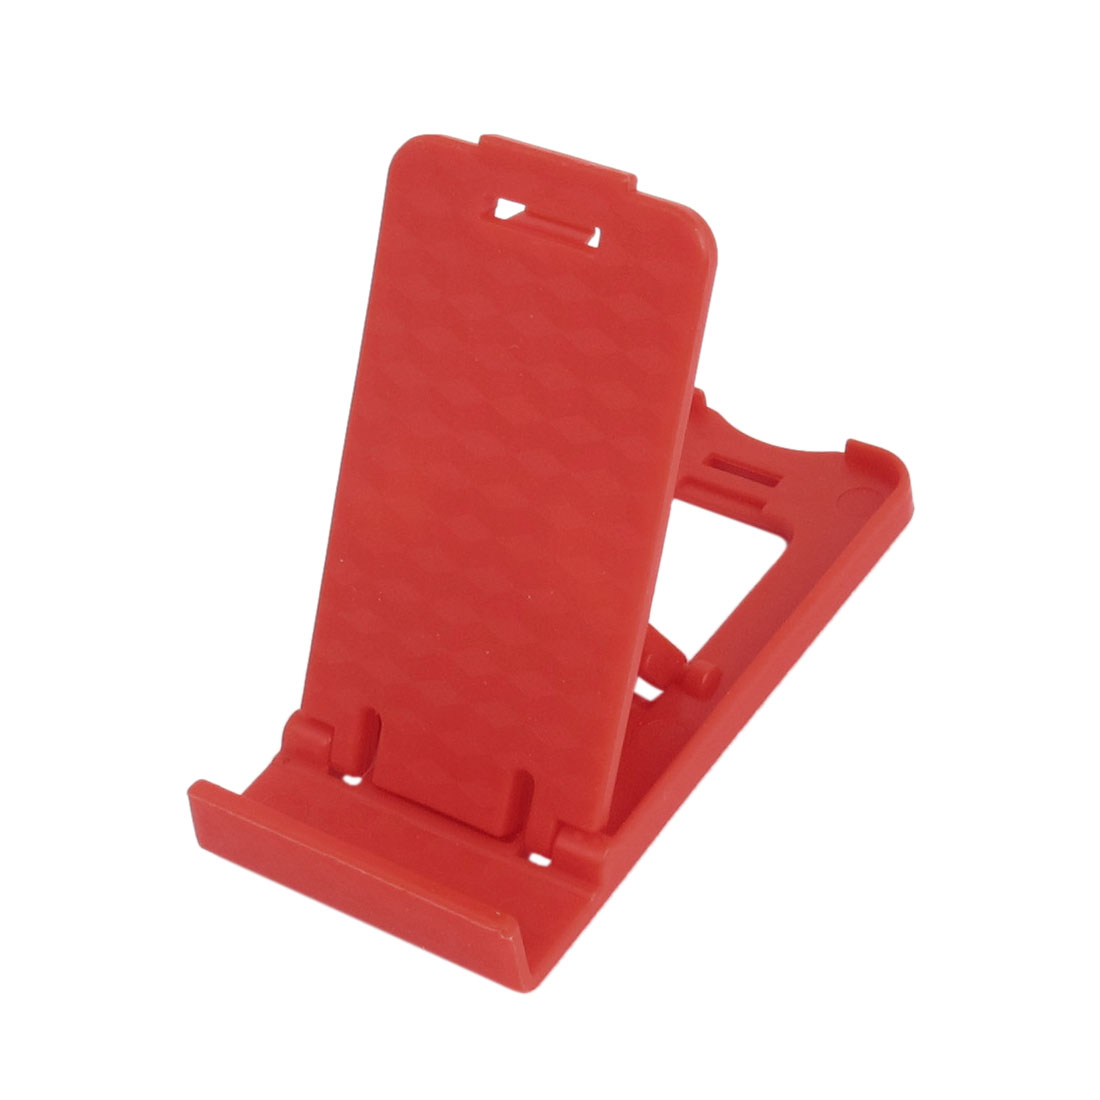 Red Plastic Foldable Desk Desktop Stand Holder Stander Bracket for MP4 iPad iPhone Cell Phone